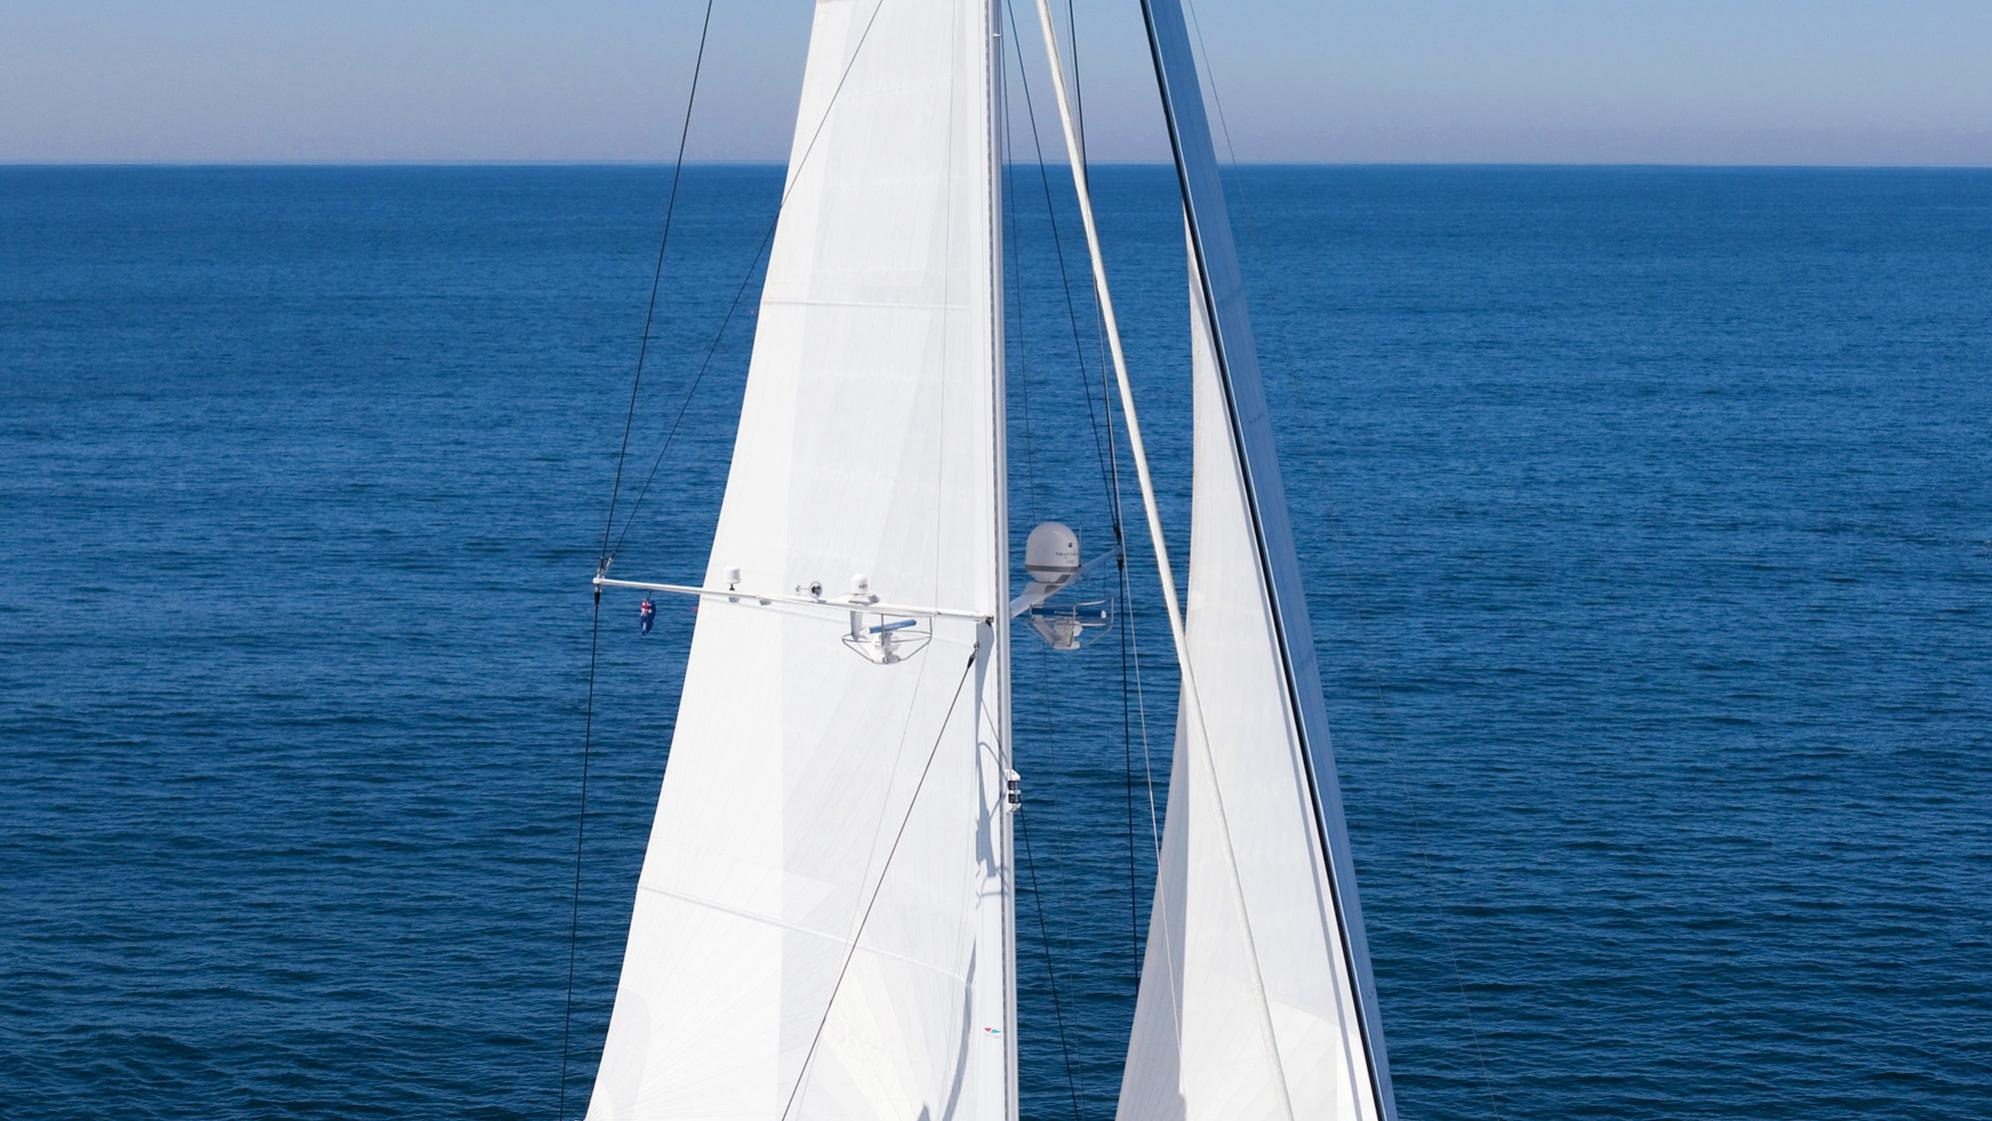 necker-belle-yacht-sailing